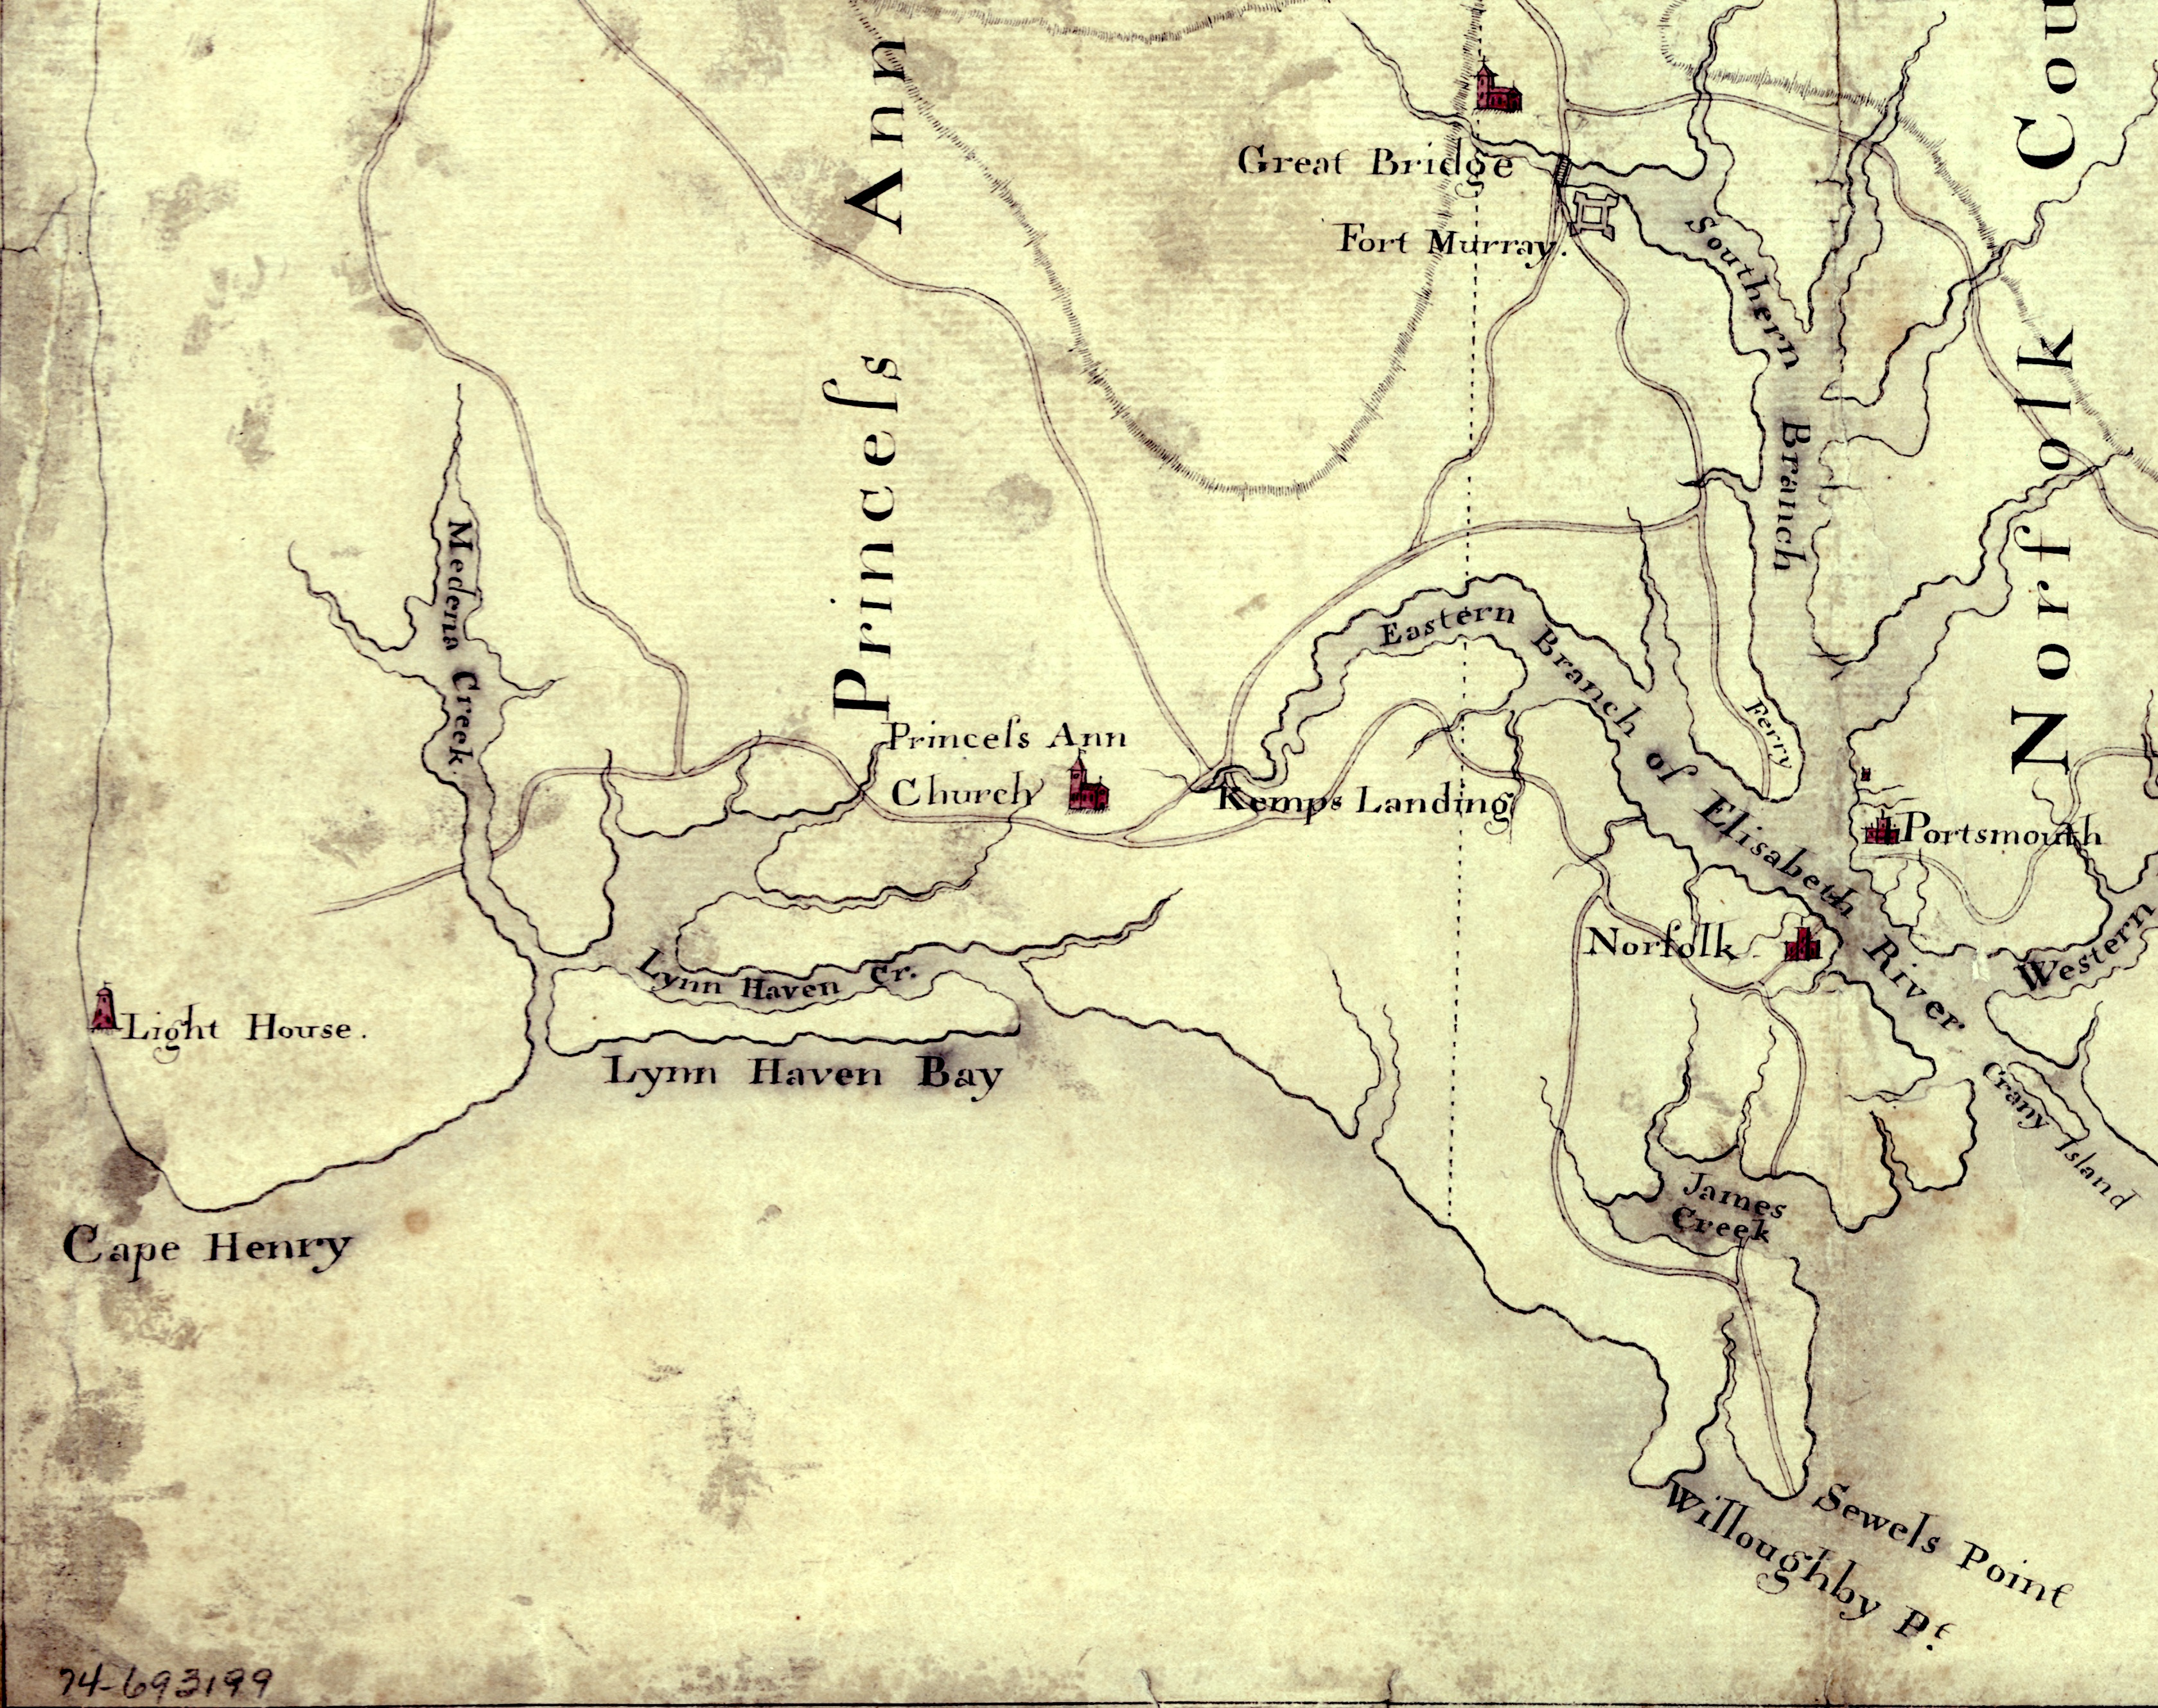 Map of the area near Norfolk at the time of the American Revolution.